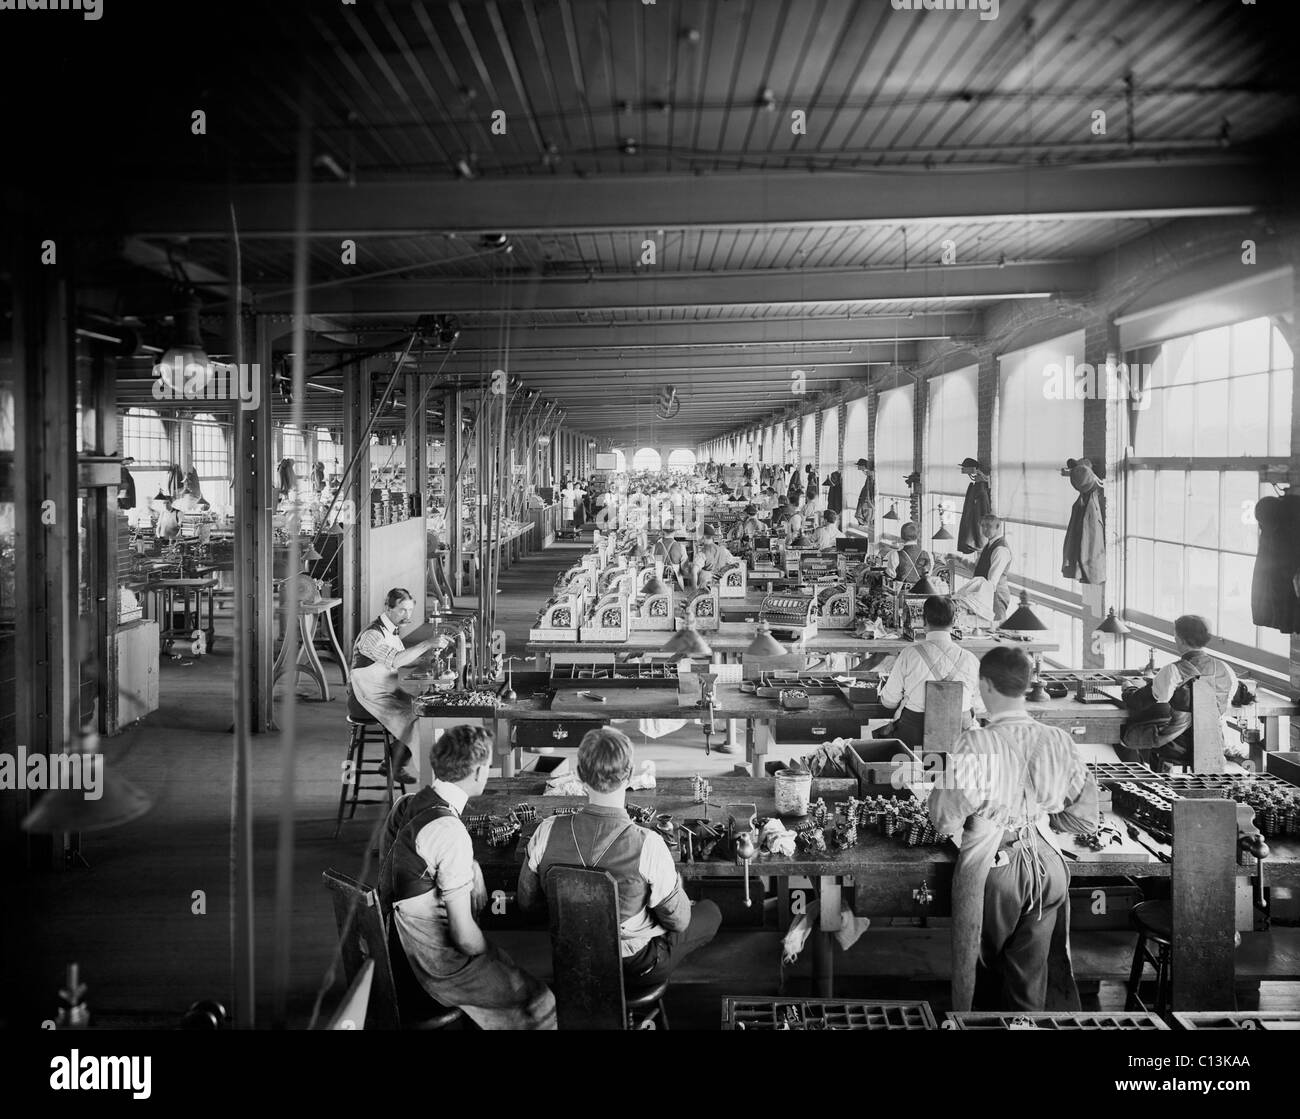 Assembling department, National Cash Register, Dayton, Ohio demonstrates mass production of precisely made complex - Stock Image